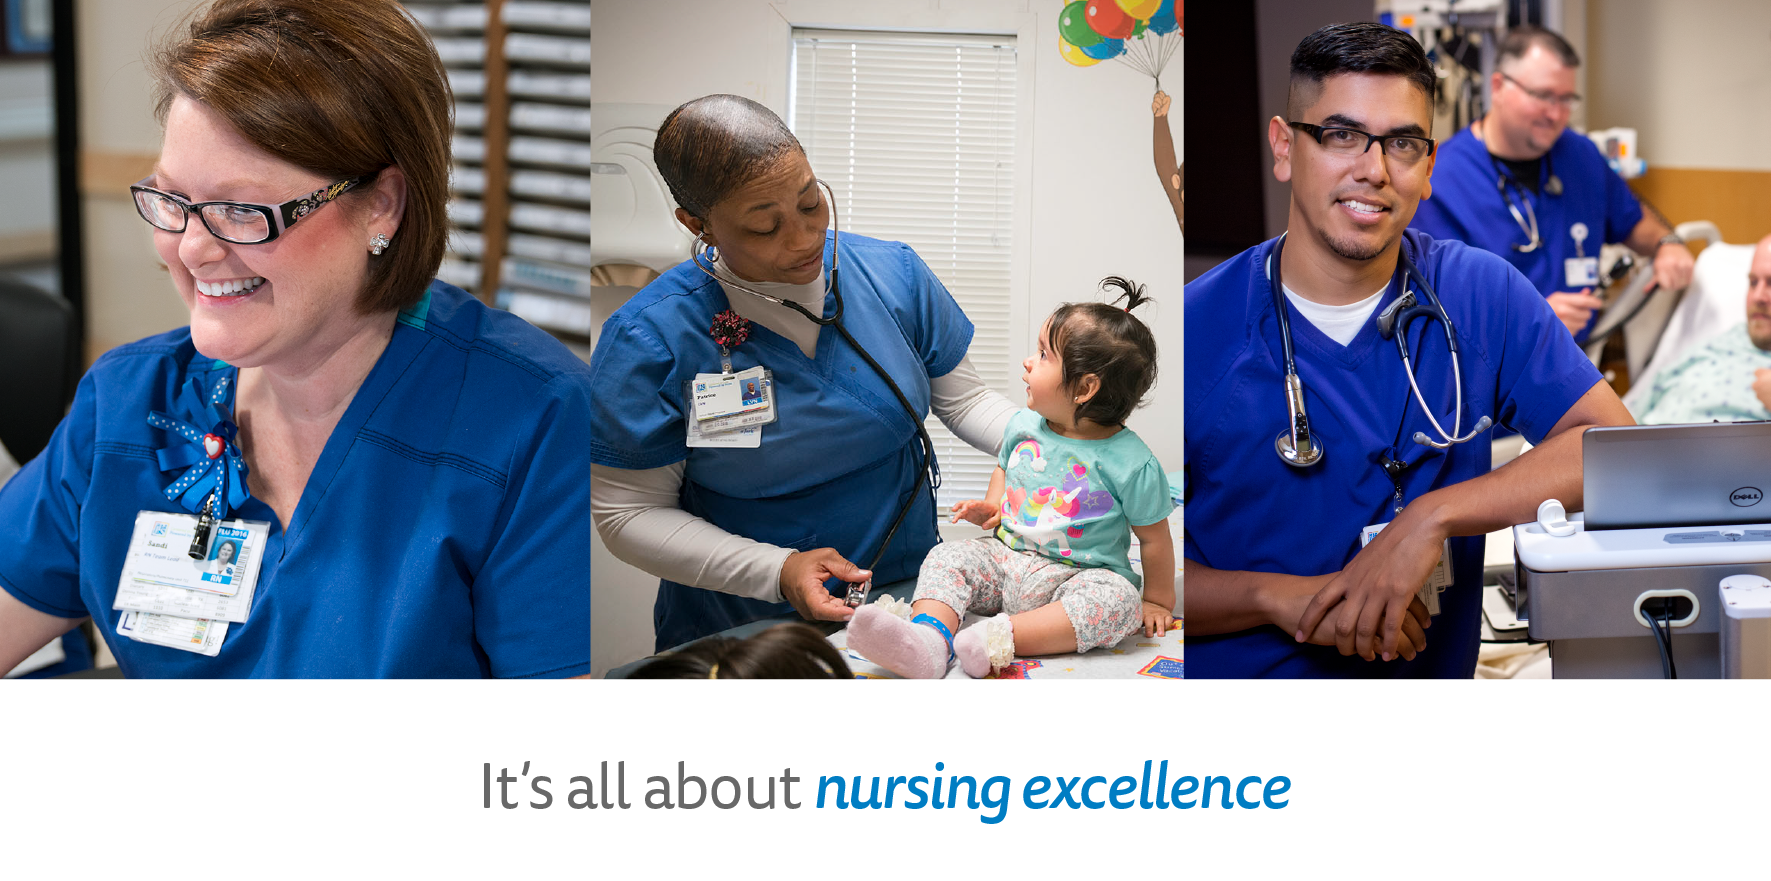 It's all about nursing excellence.